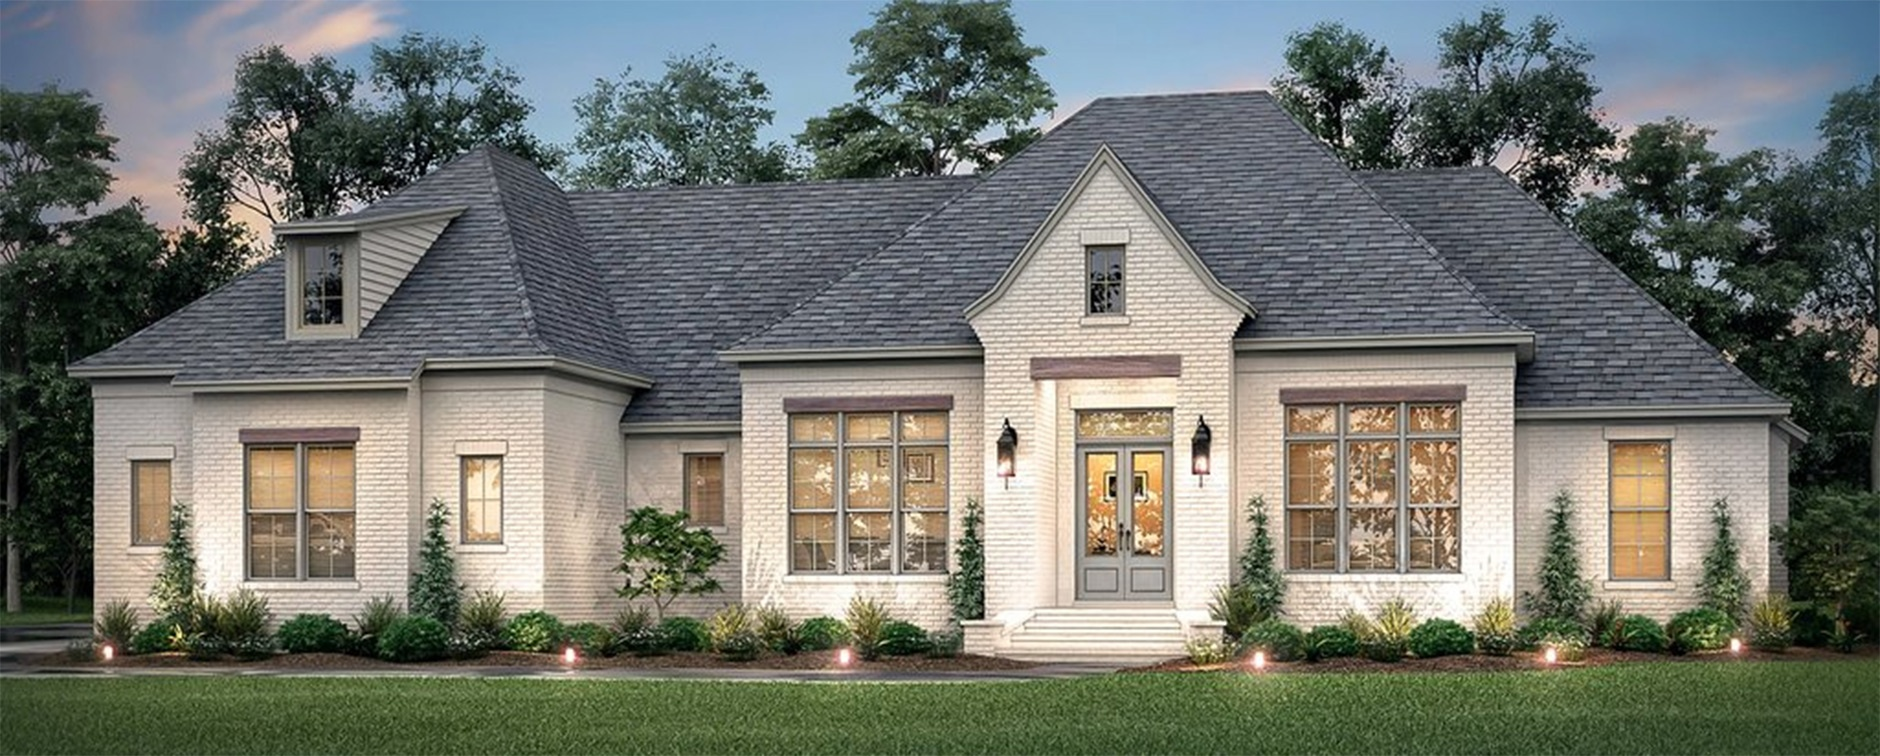 Browse Luxury House Plans